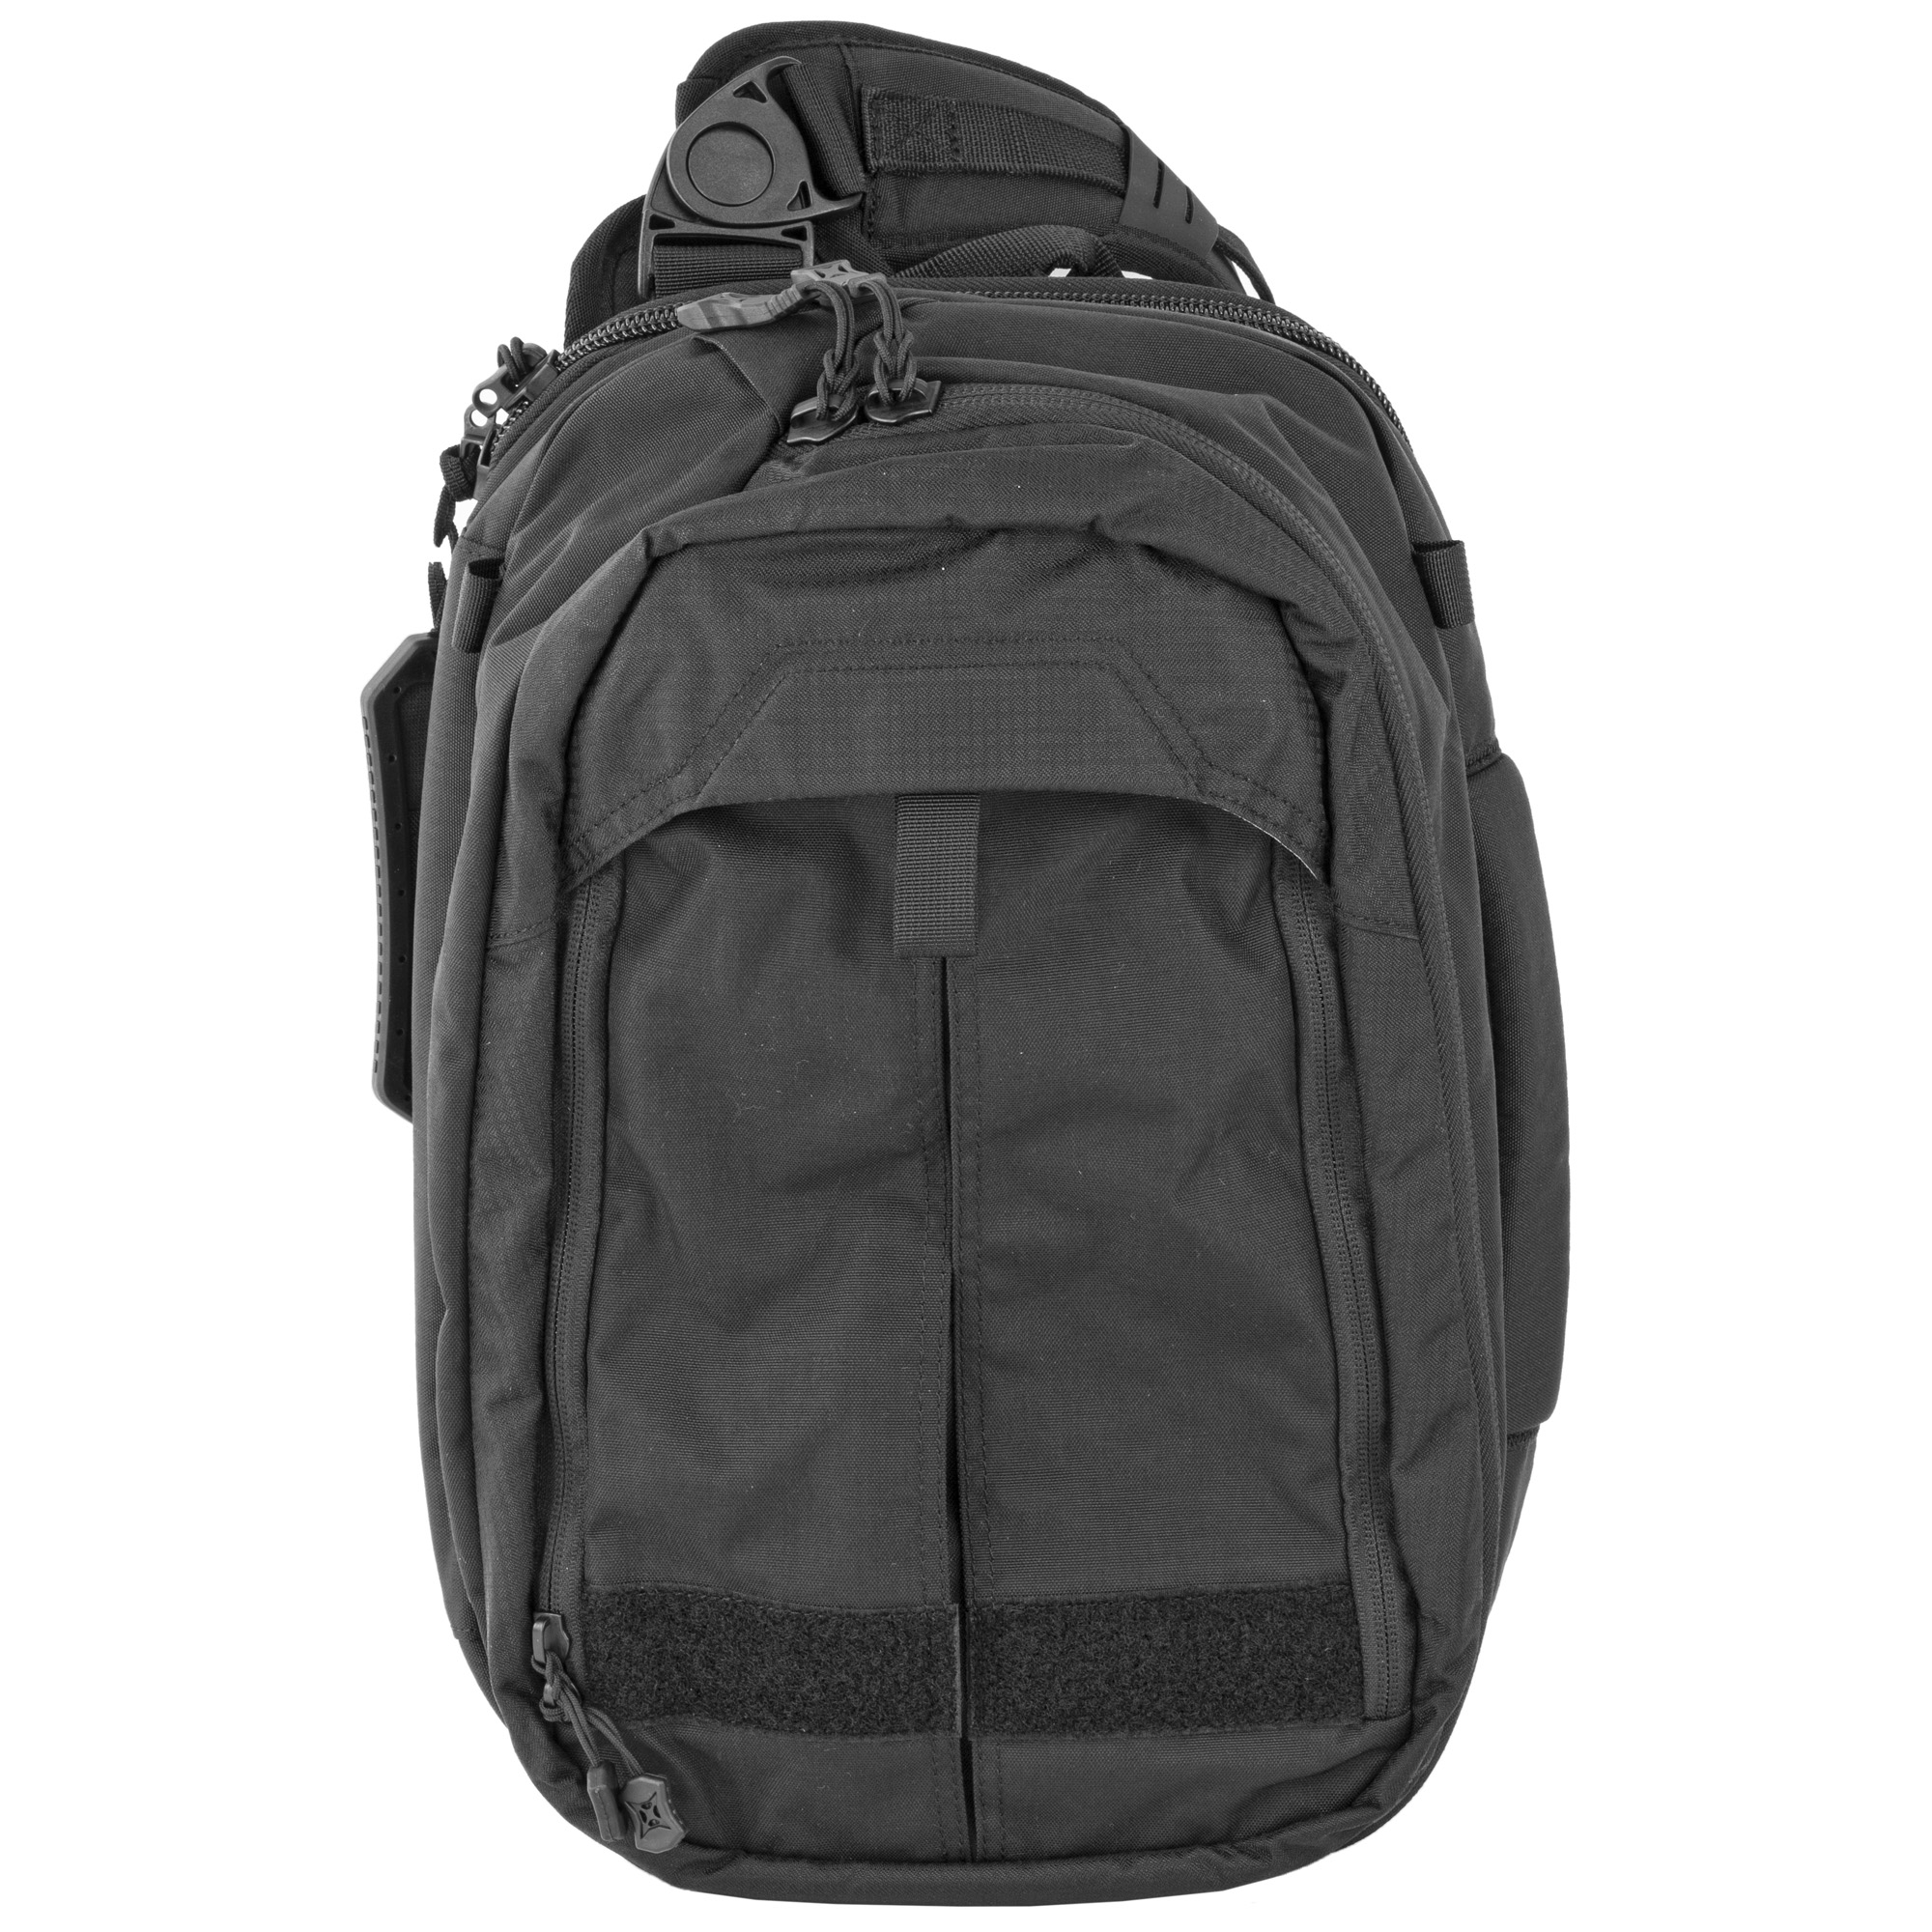 """When you're on the go and can't be burdened by a full-size pack but still need to bring the goods"""" this medium volume sling is spacious and versatile enough to handle your CCW and EDC needs. Blending into the crowd is easy with the Transit Sling. Plus"""" when the need arises"""" you can change its outward appearance while retaining rapid access to your secured tools quickly and without announcing the presence of your gear. Comfortable shoulder and waist straps manage loads that can include hydration systems"""" laptops and everything in between."""